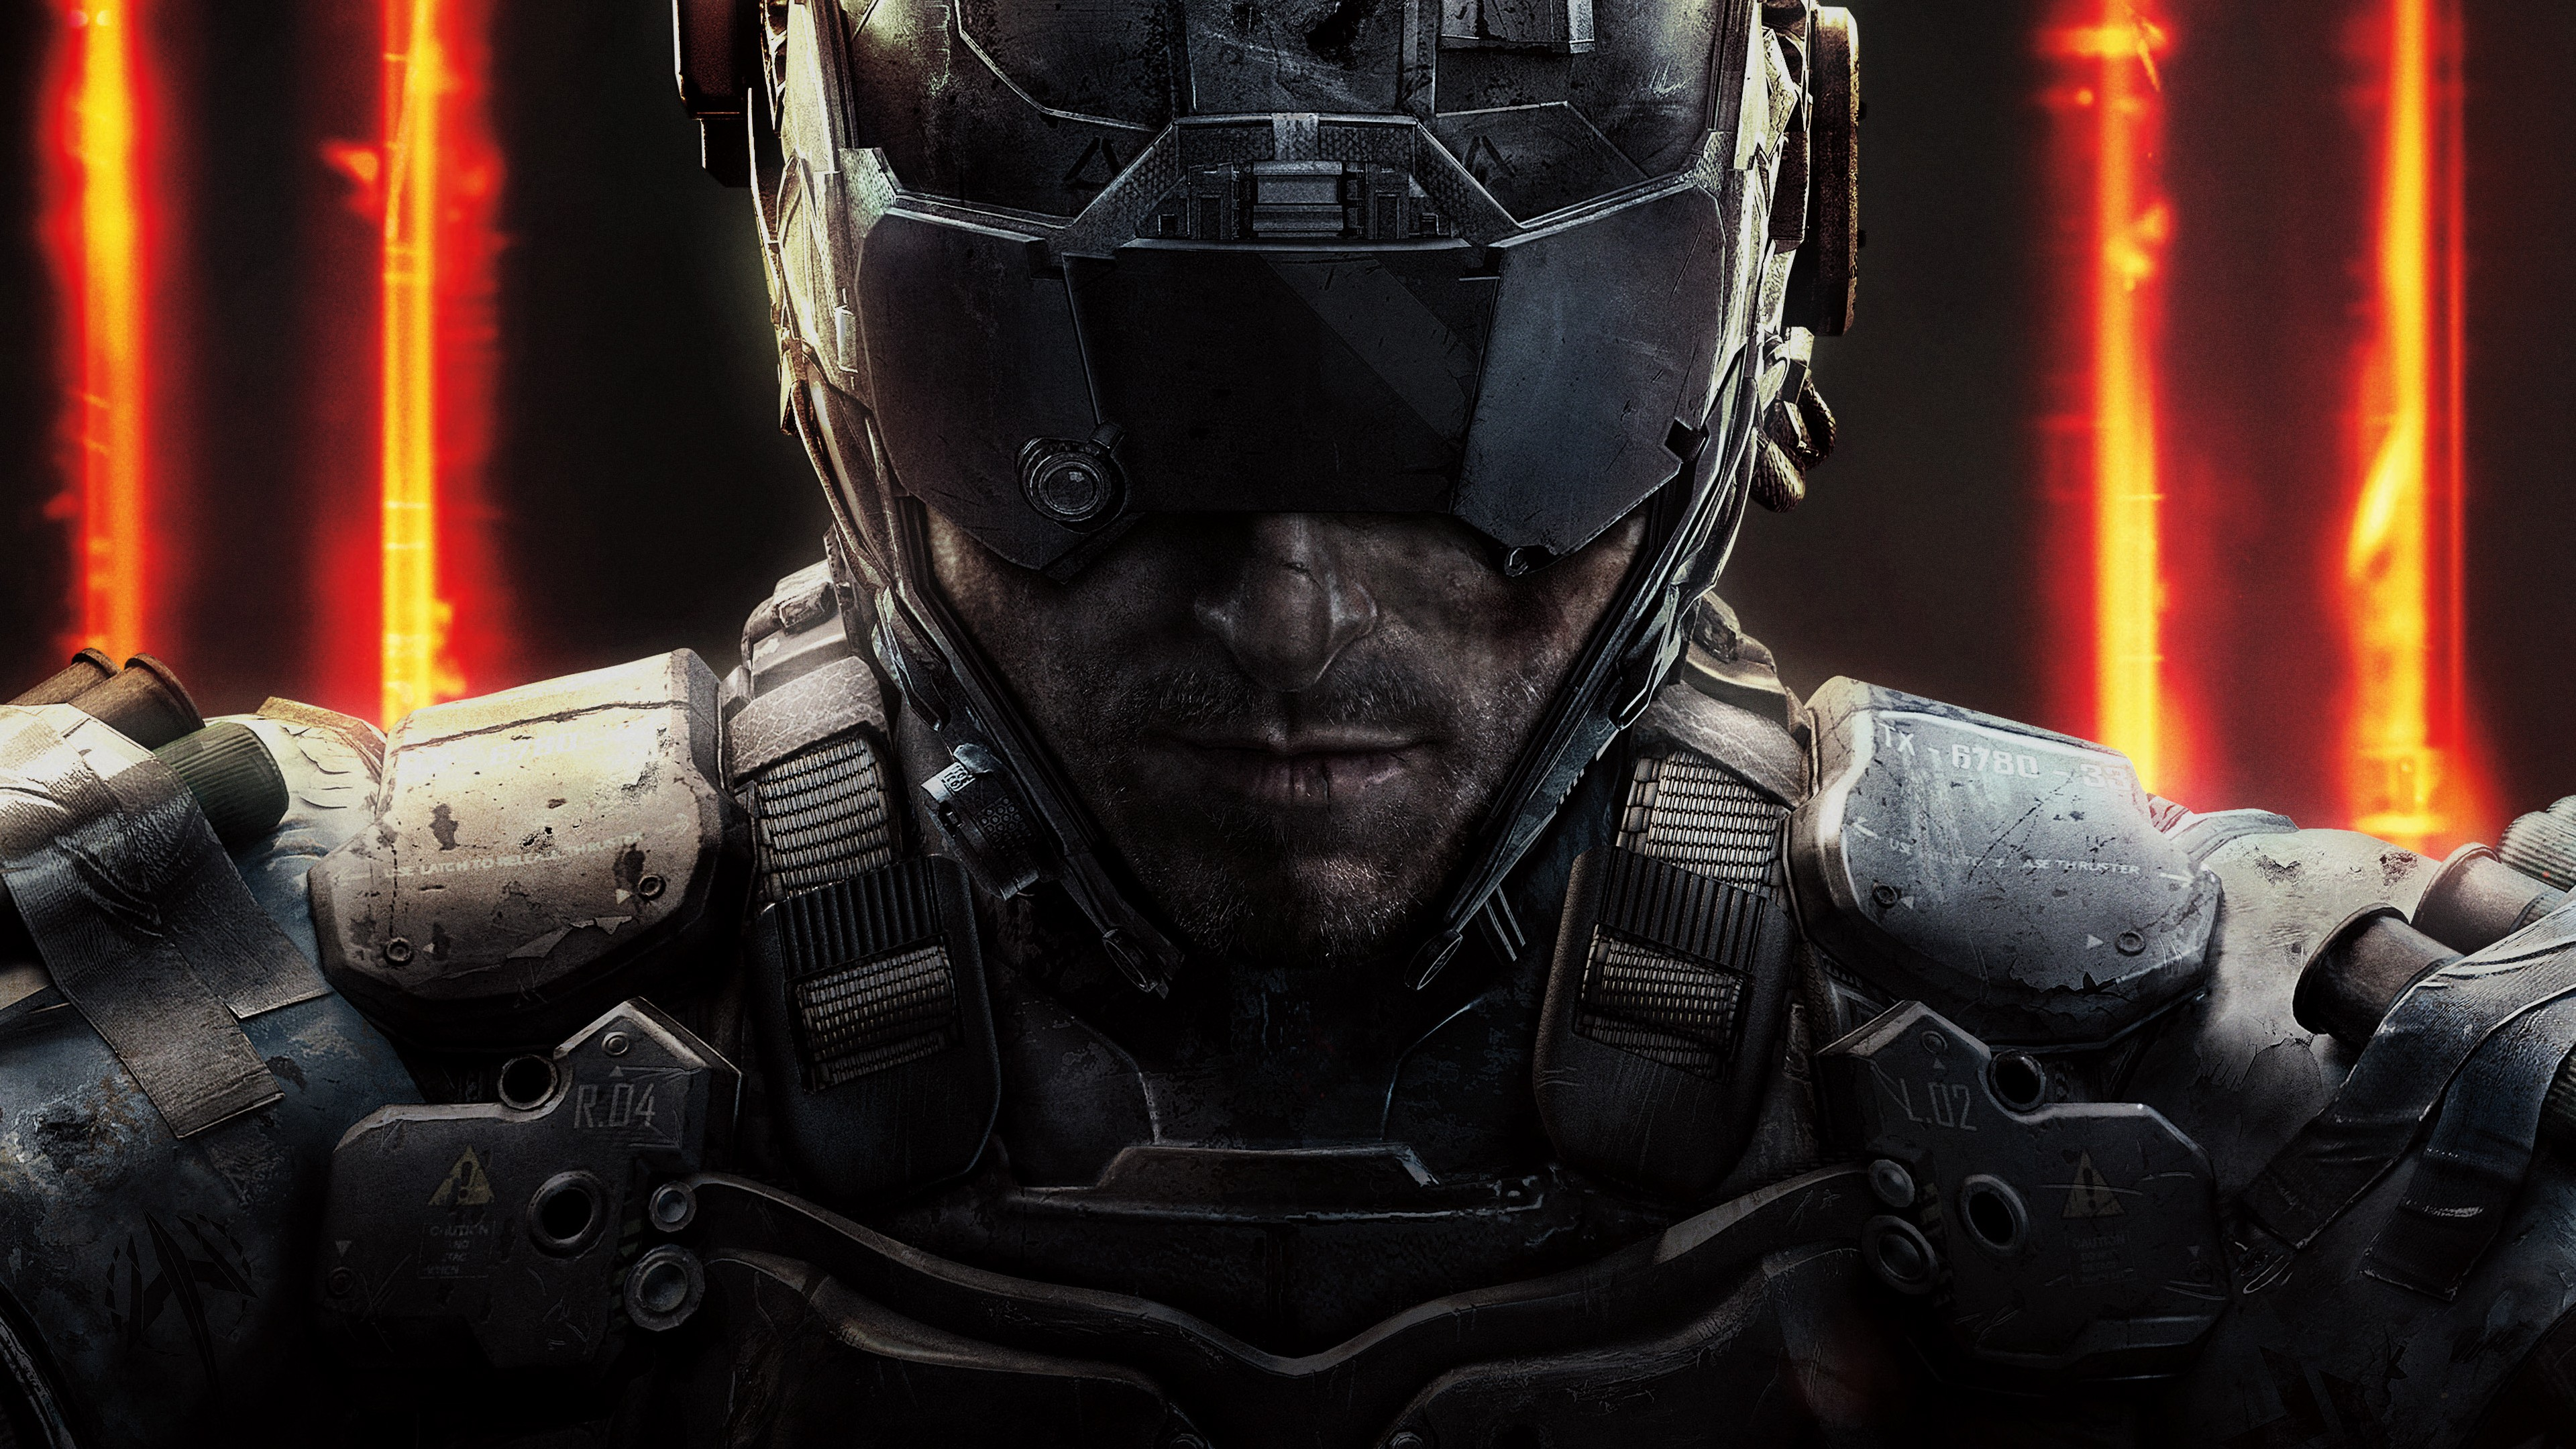 Call Of Duty Black Ops 3 2 Ps4wallpapers Com